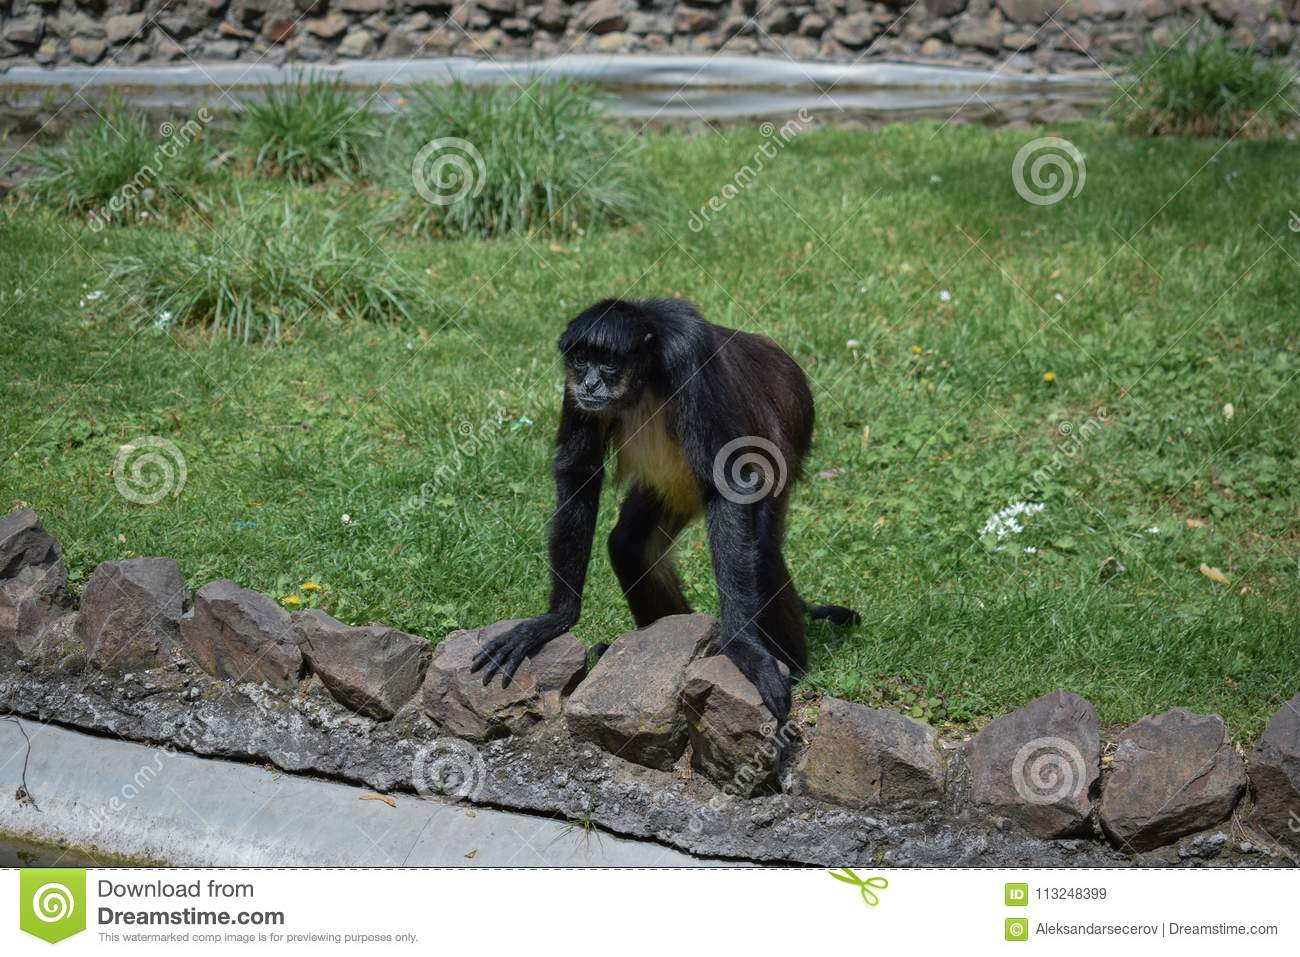 A monkey standing on a grass leaning against a fence of ponds.